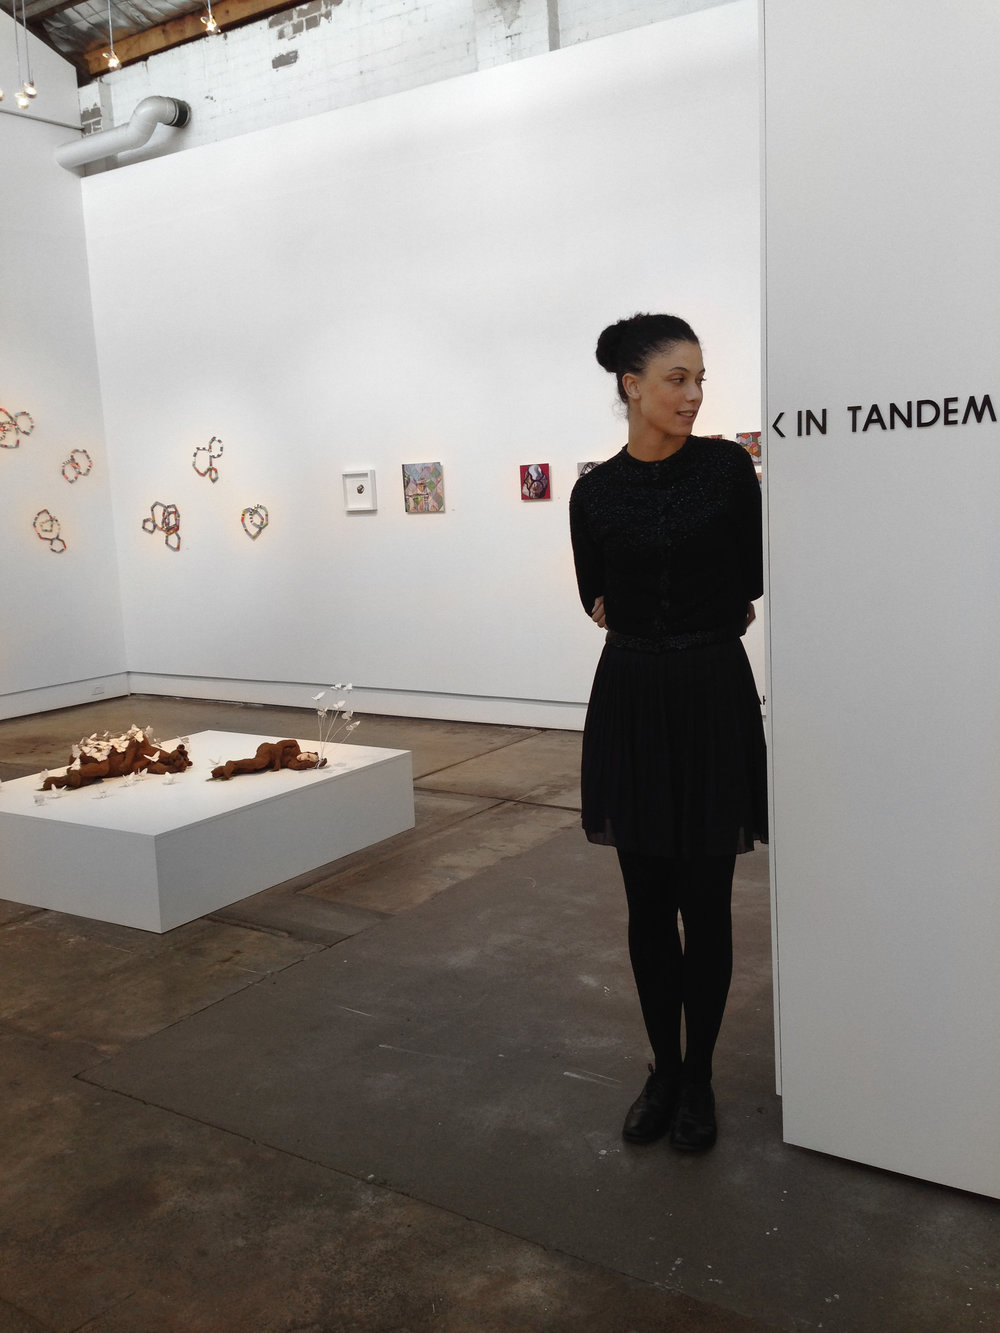 'In Tandem' 2014, installation view, Brenda May Gallery, Sydney. Curated by Olivia Welch. Image courtesy of the Artists and MAY SPACE, Sydney.